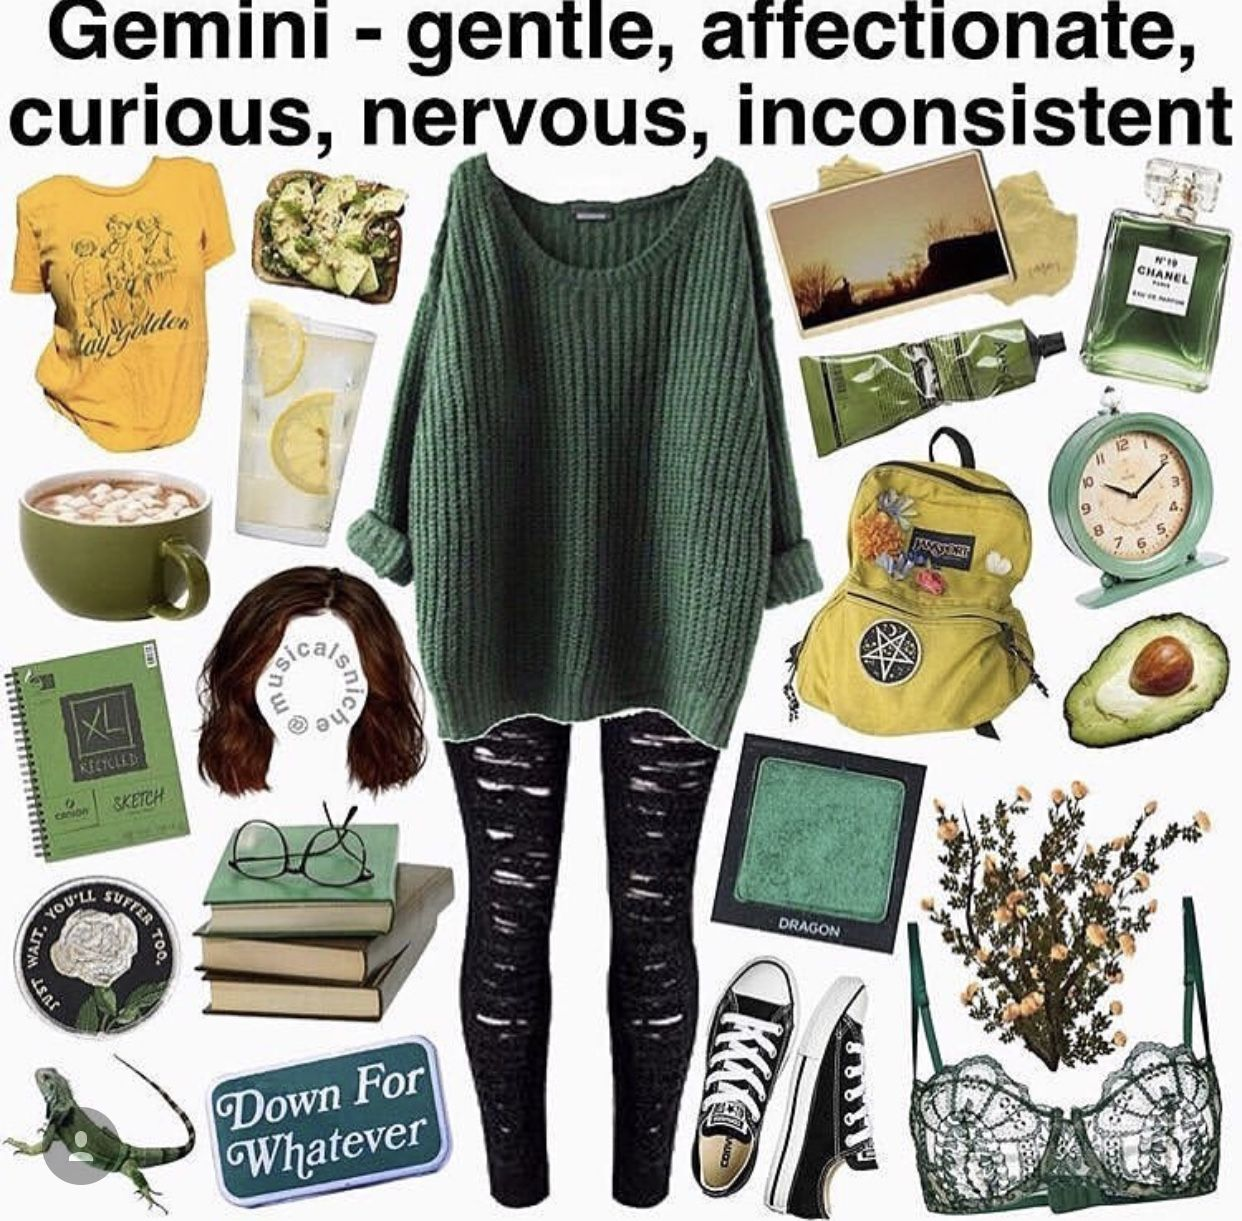 Pin By Gu Ns On Clothes Mood Boards Zodiac Sign Fashion Aesthetic Clothes Mood Board Fashion